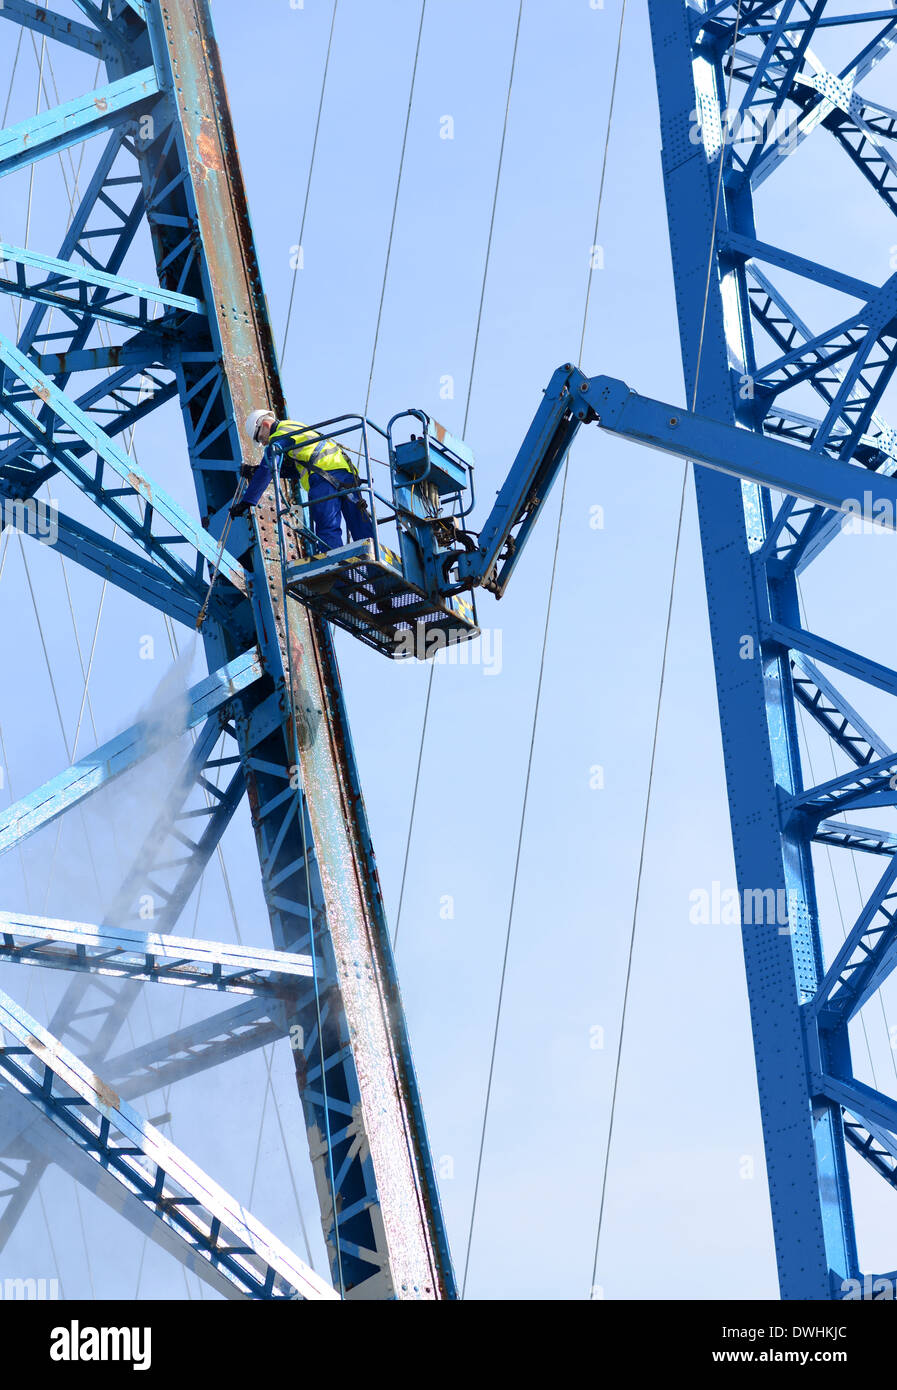 HP water washing of a steel bridge at height prior to painting - Stock Image